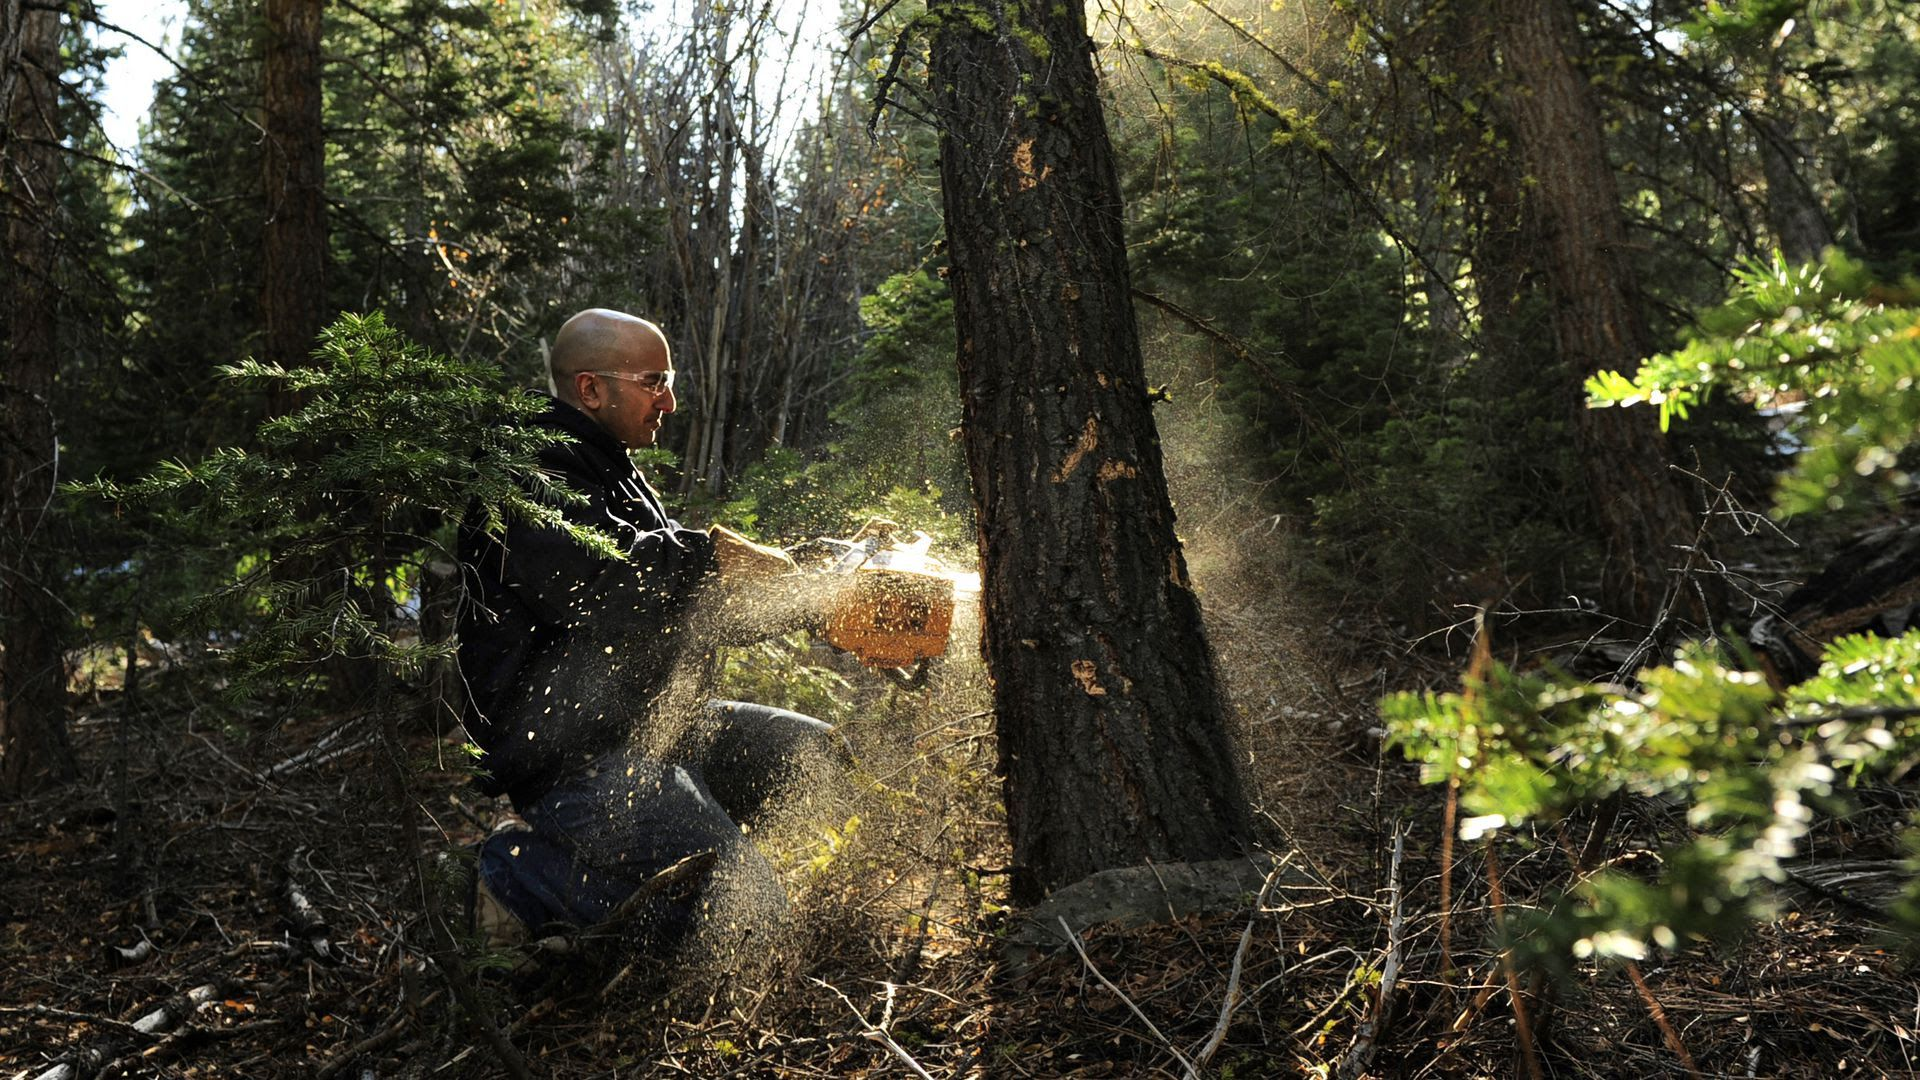 Neel Kashkari treats a tree on his property as though it were the current 2.5% Fed Funds target rate. Photo: Linda Davidson/The Washington Post via Getty Images